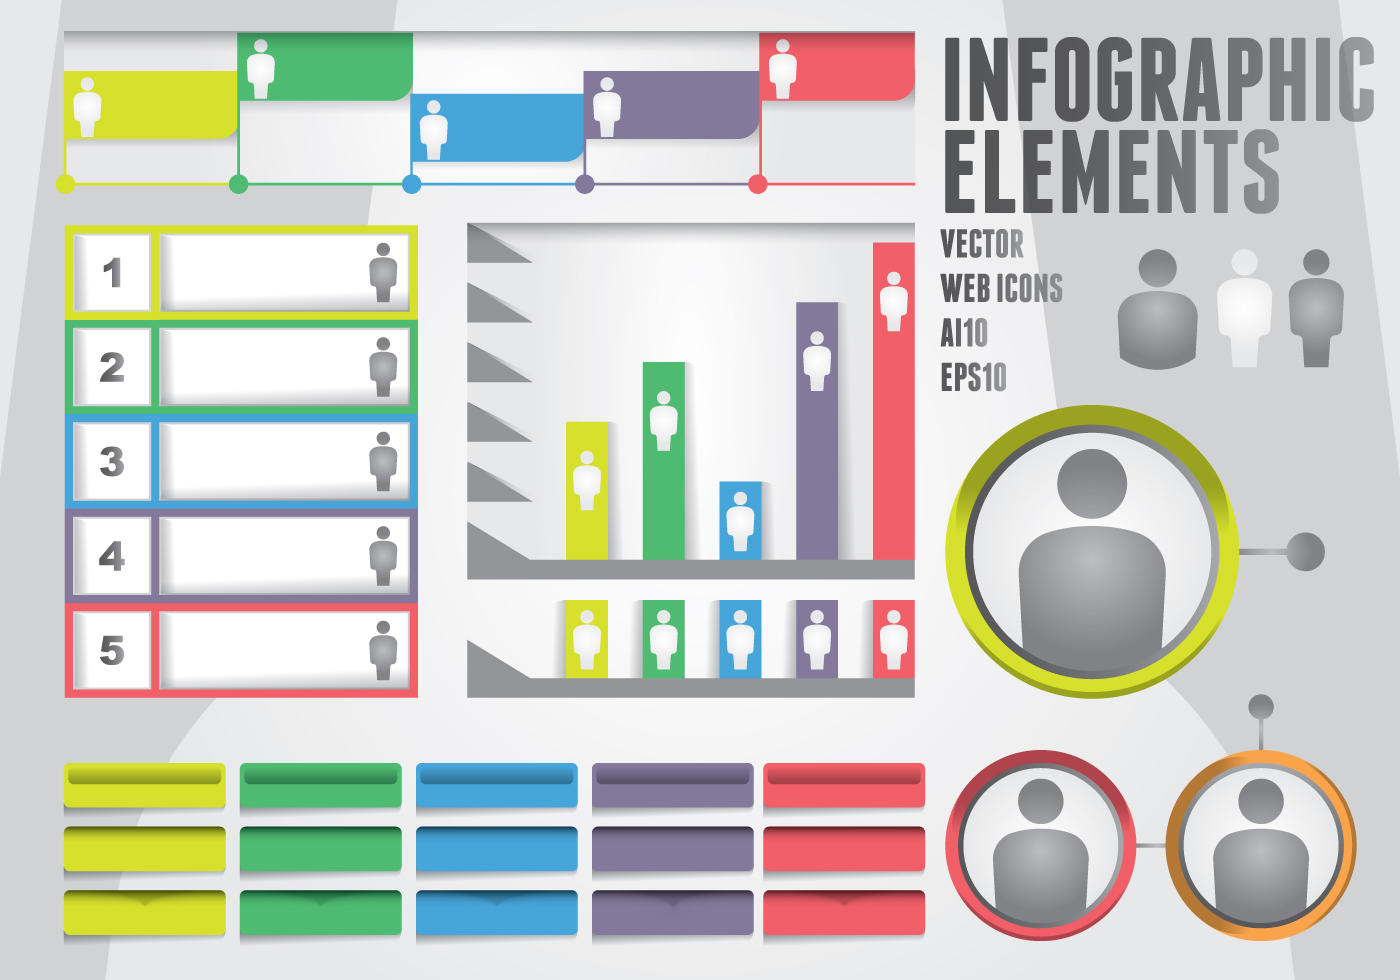 Infographic Elements - Download Free Vector Art, Stock ...